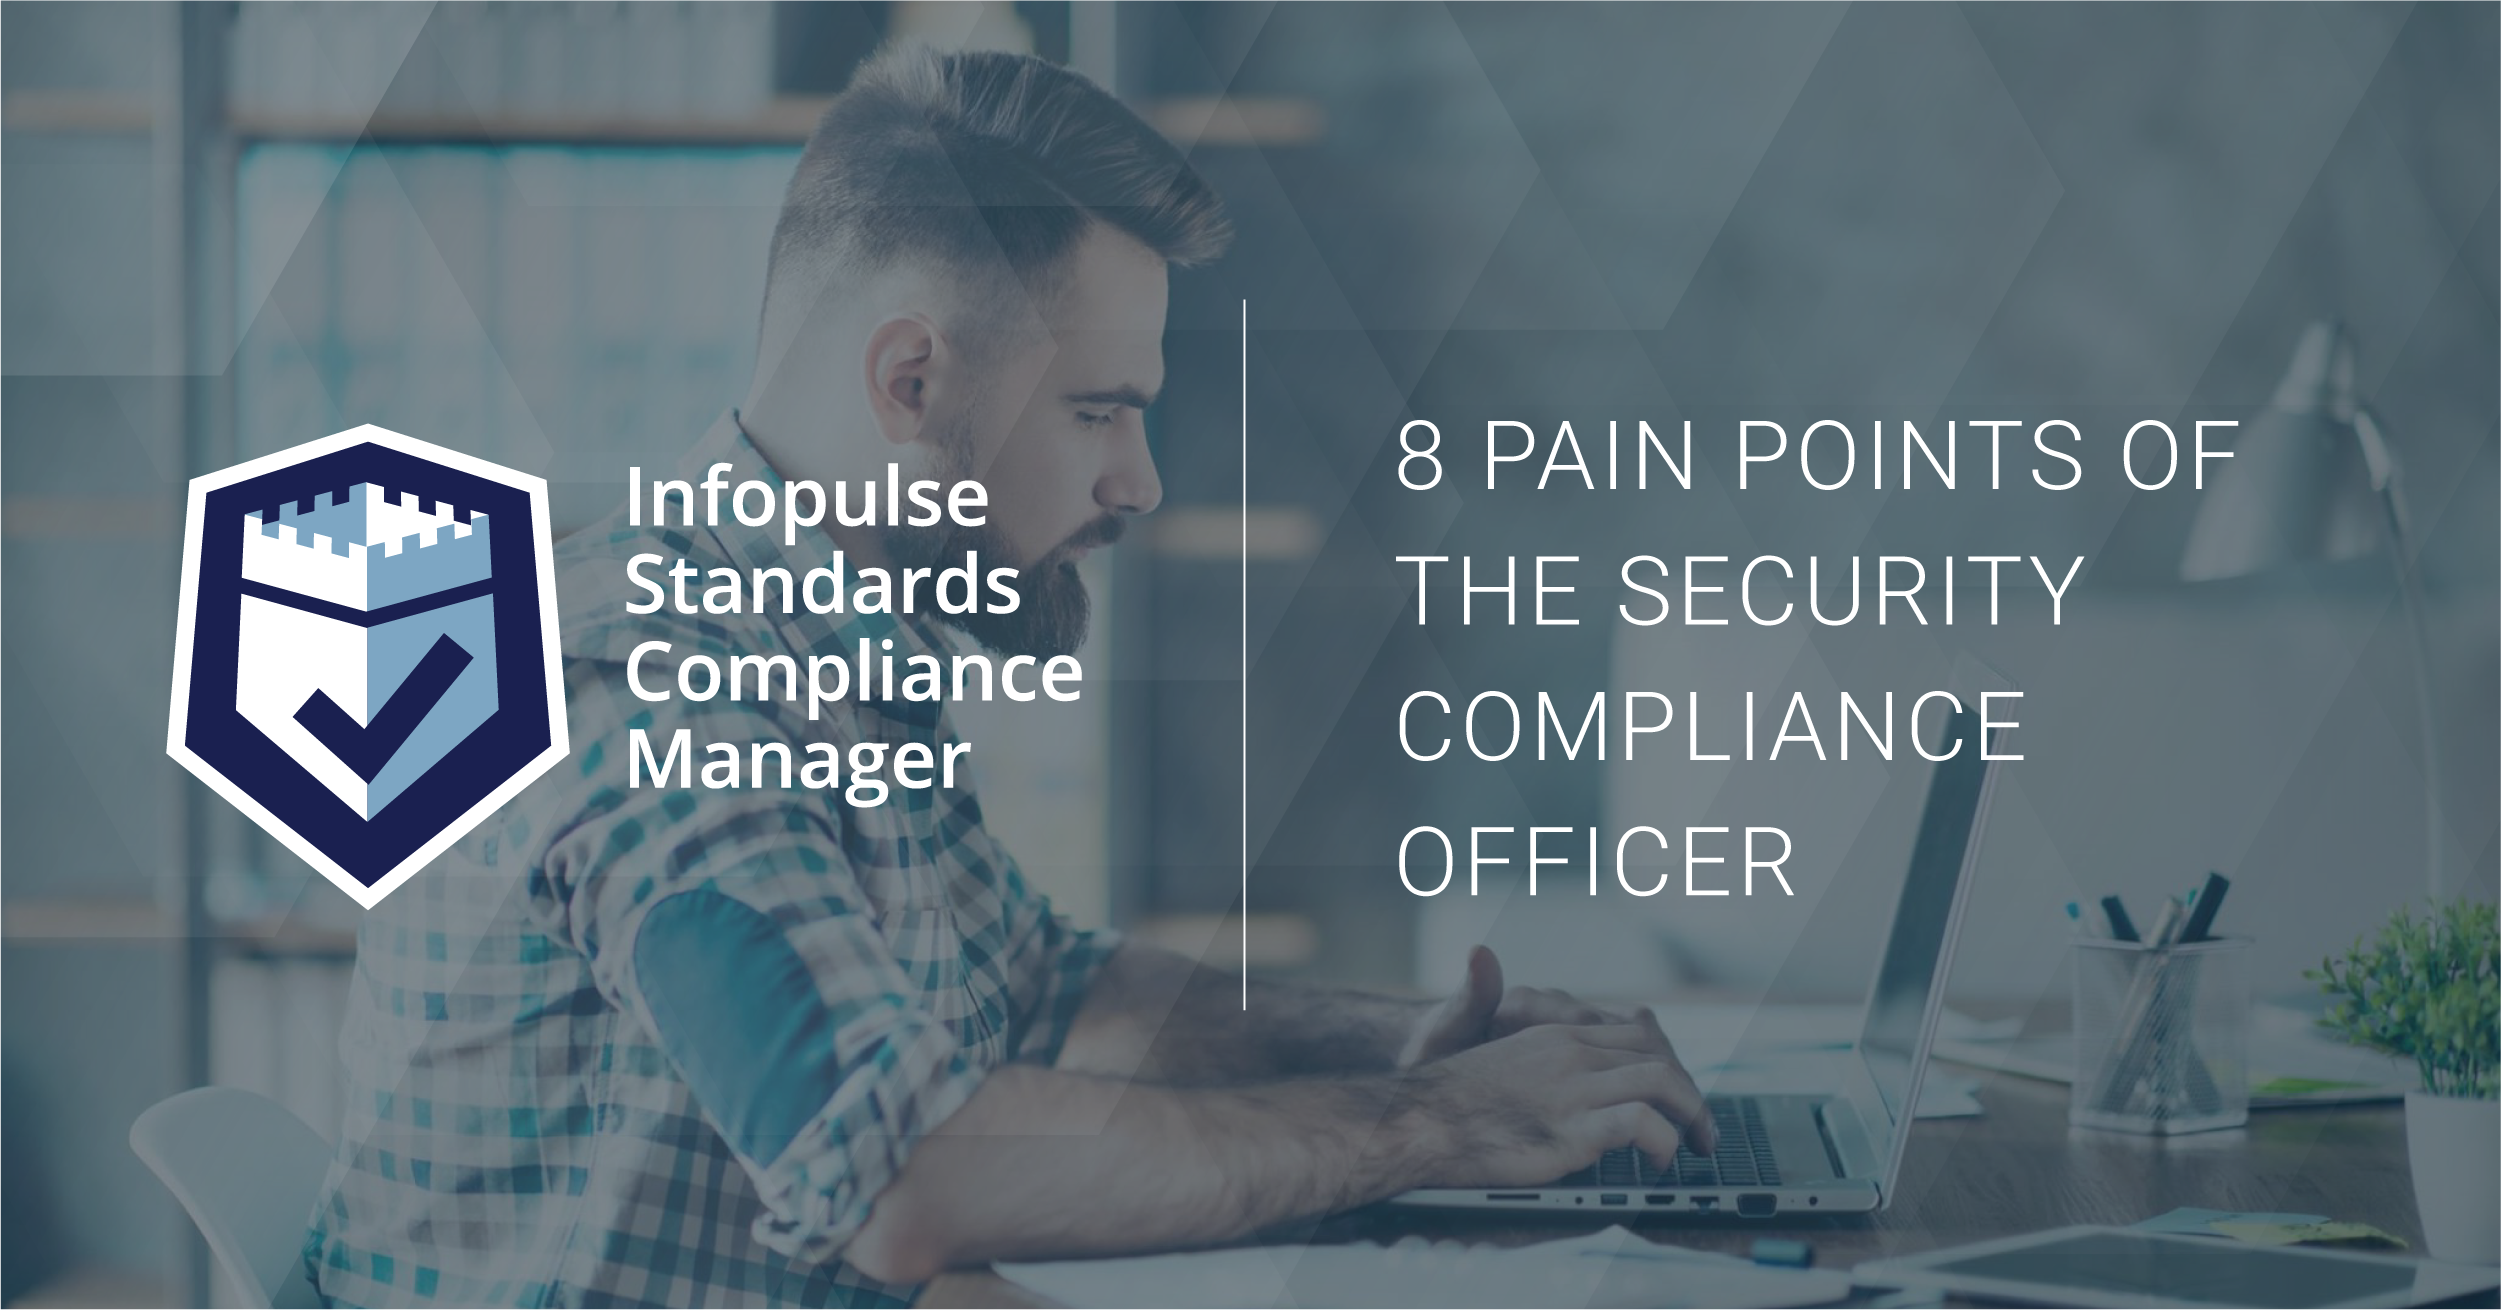 Compliance officer GRC solution Infopulse SCM